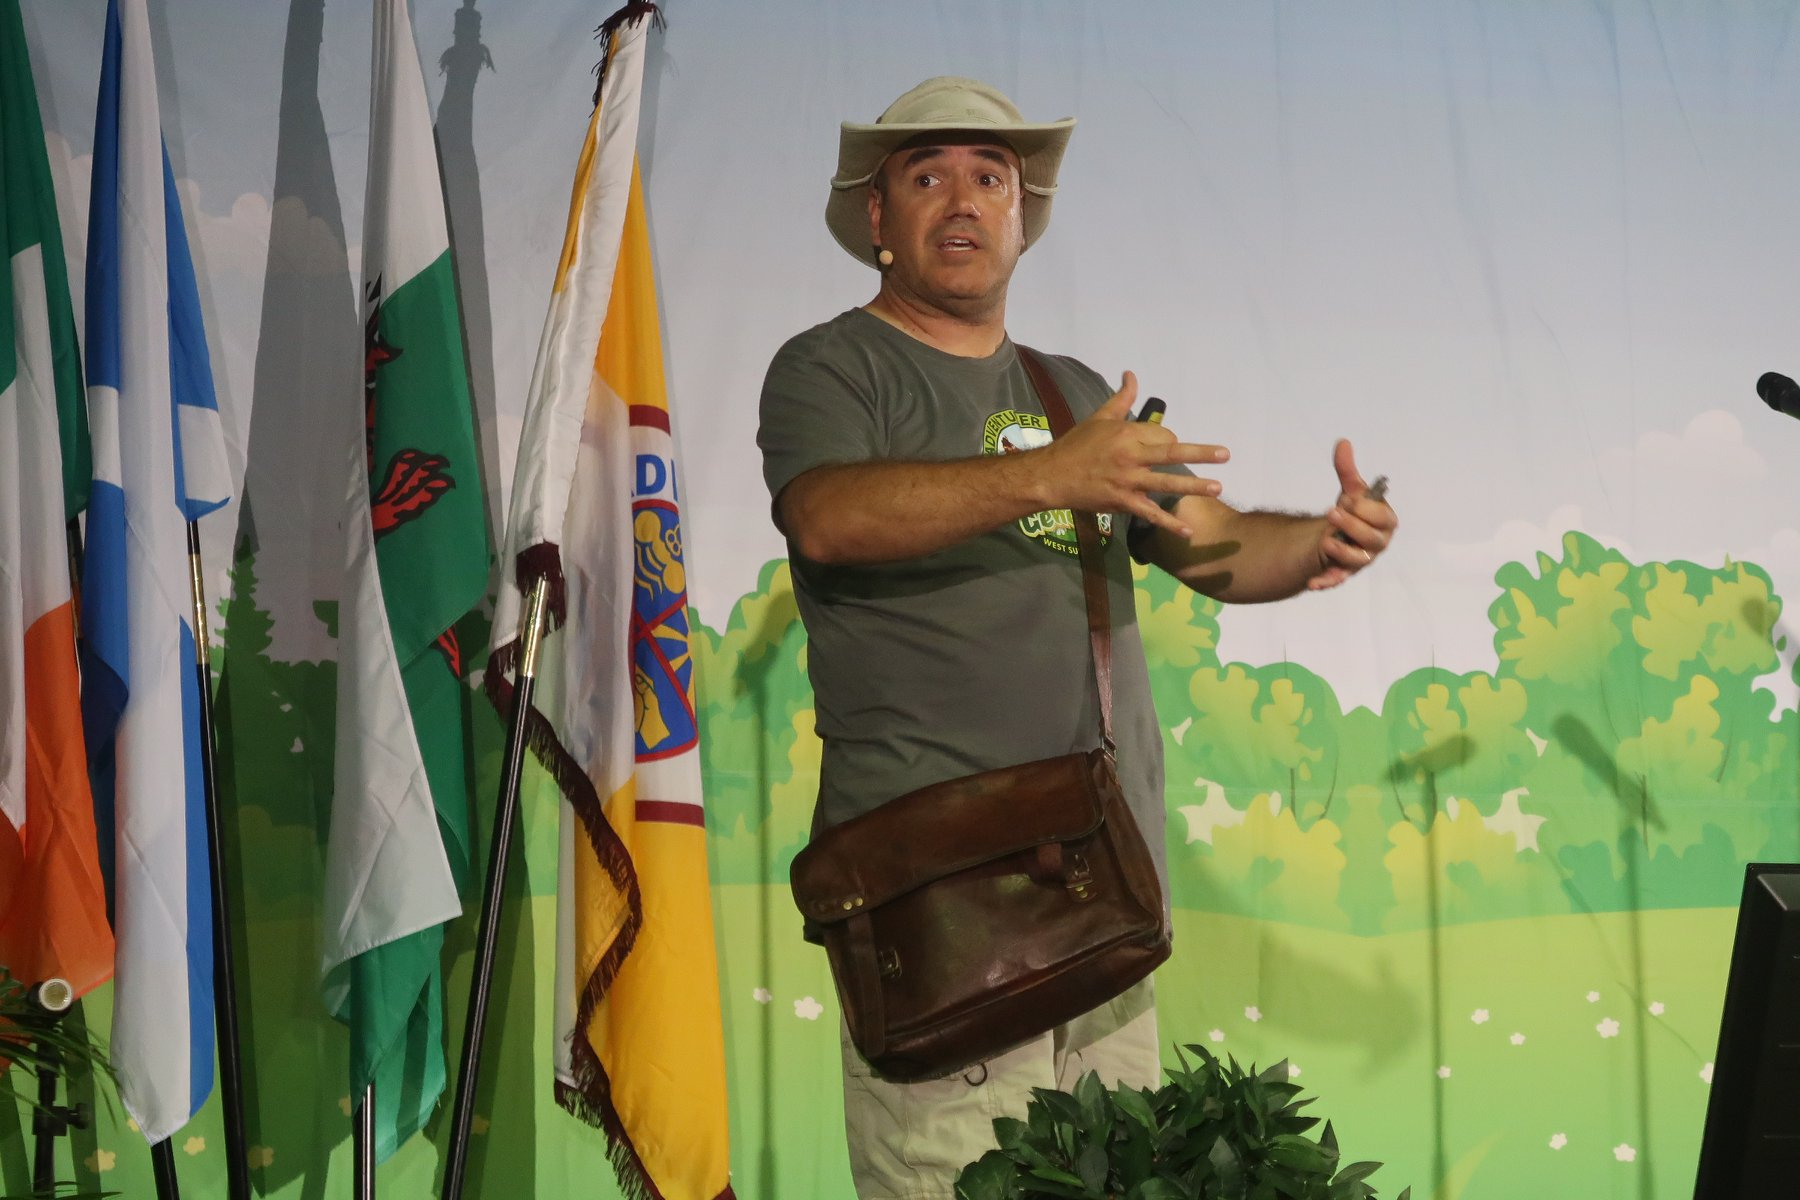 BUC Adventurer camporee speaker